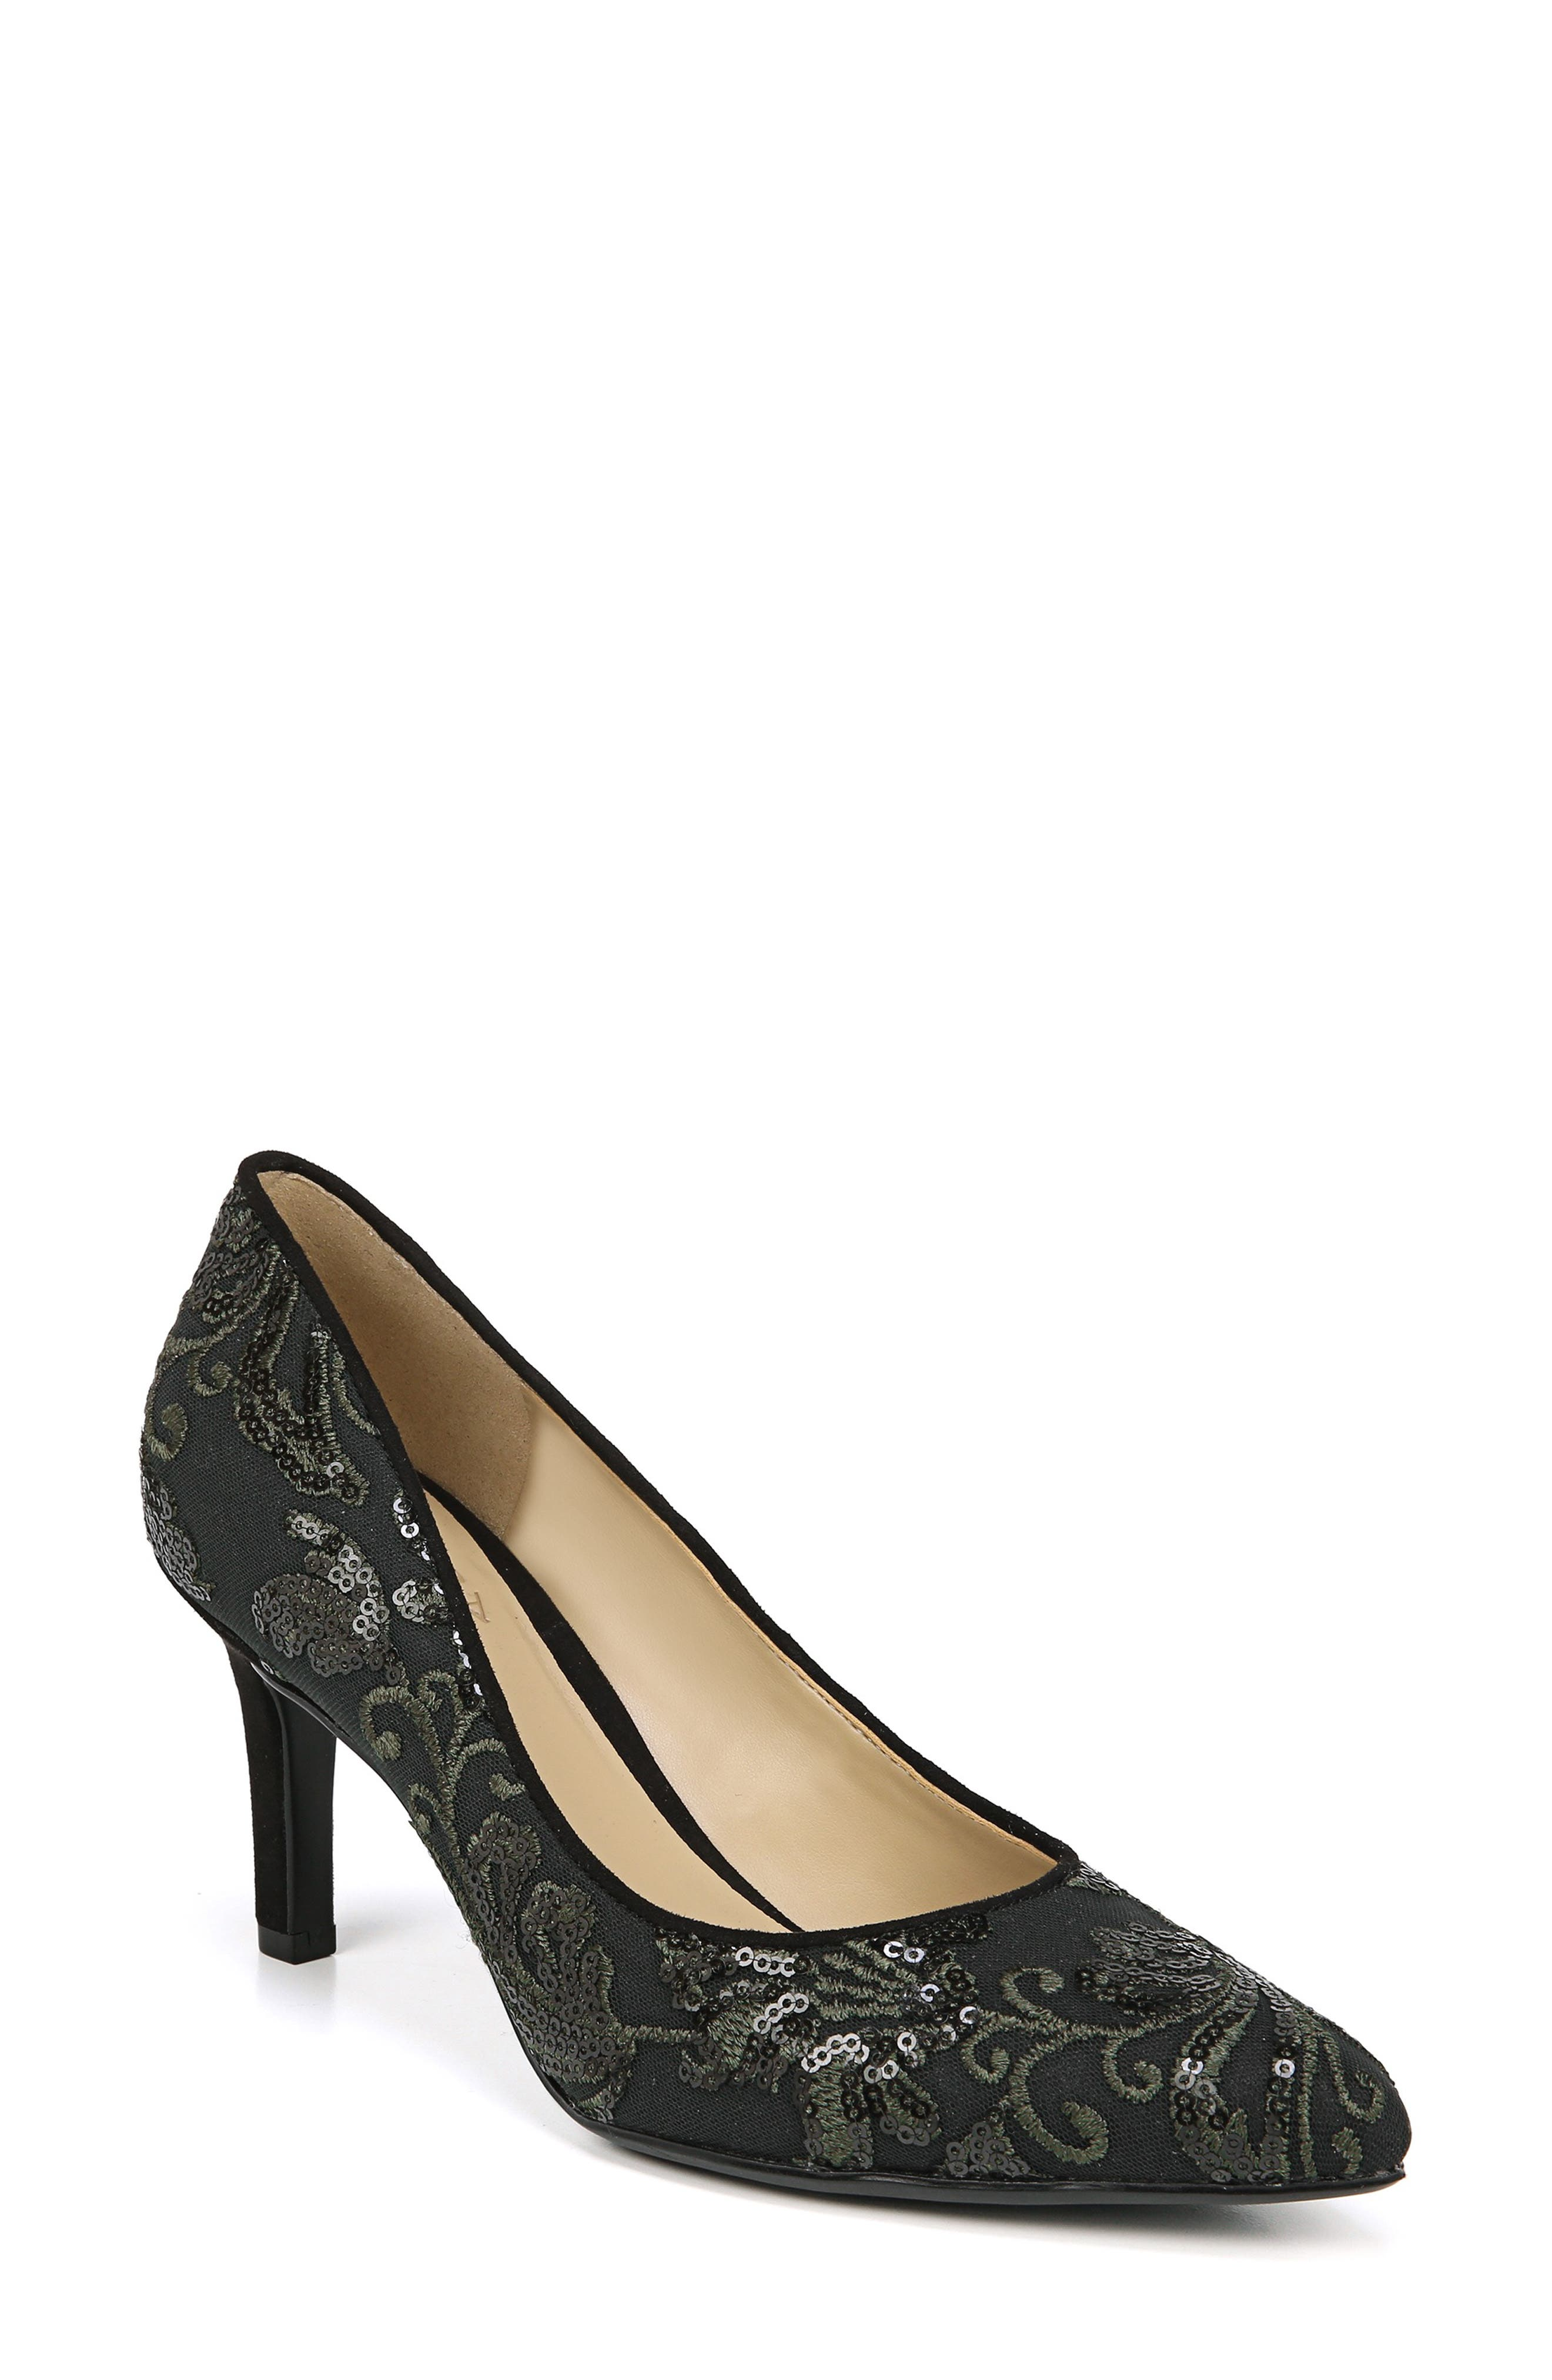 NATURALIZER, Natalie Pointy Toe Pump, Main thumbnail 1, color, FERN GREEN EMBROIDERED